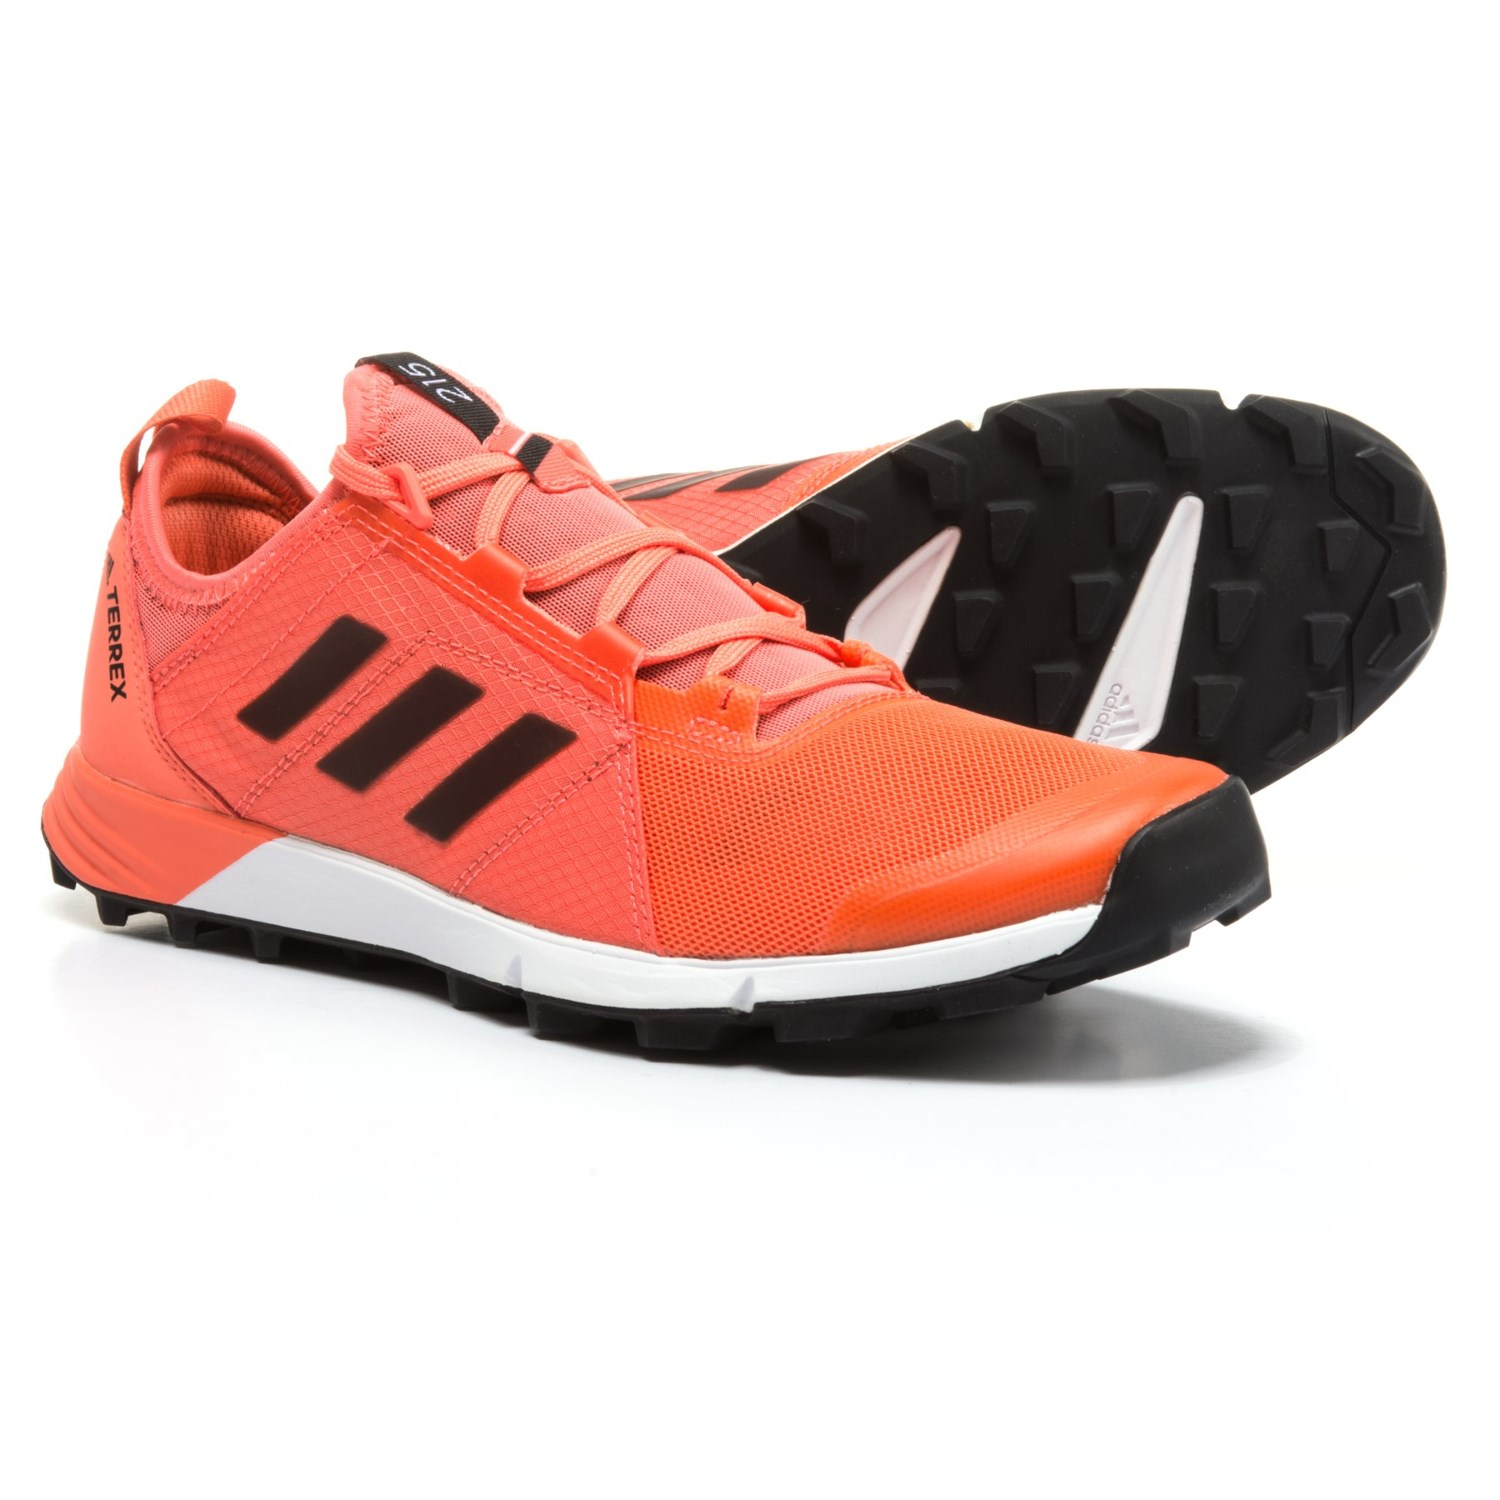 976884a0a adidas Terrex Agravic Speed Trail Running Shoes (For Women) in Easy  Coral Black